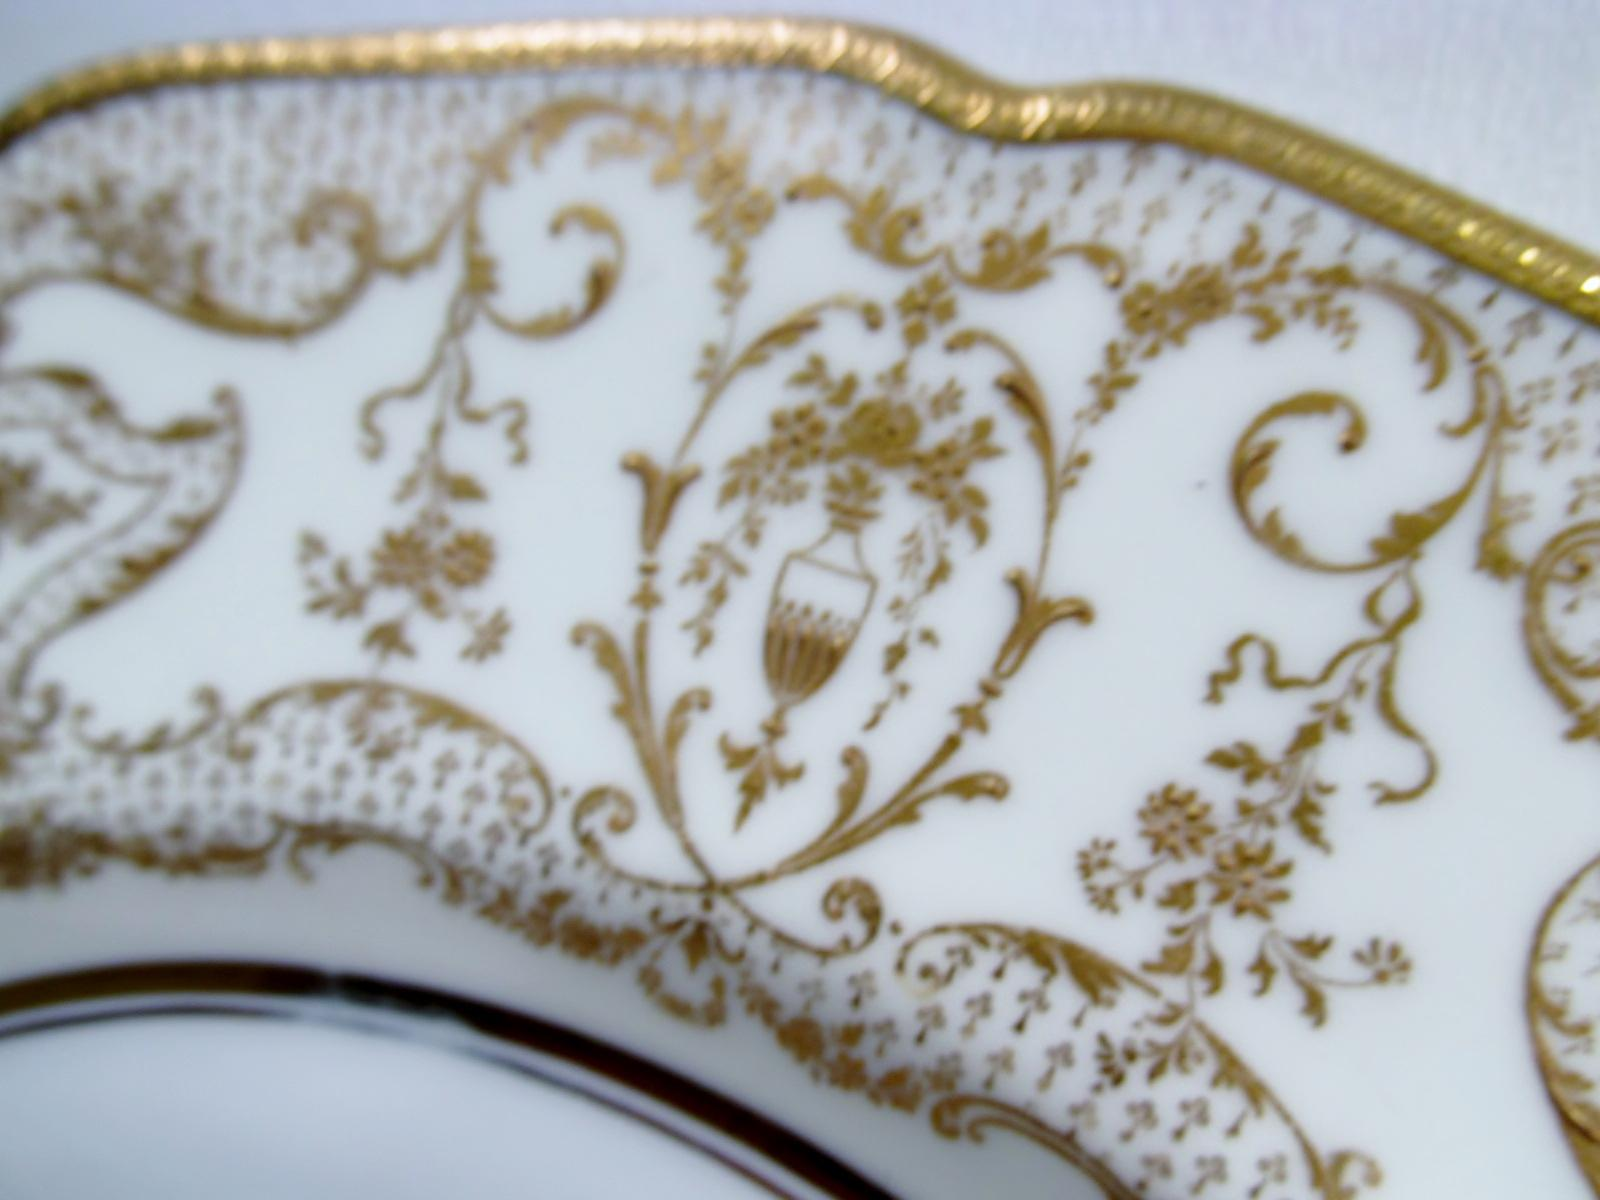 Antique Spaulding u0026 Co Royal Doulton Dinner Plates - Set of 10 - Image 4 of  sc 1 st  Chairish & Antique Spaulding u0026 Co Royal Doulton Dinner Plates - Set of 10 ...